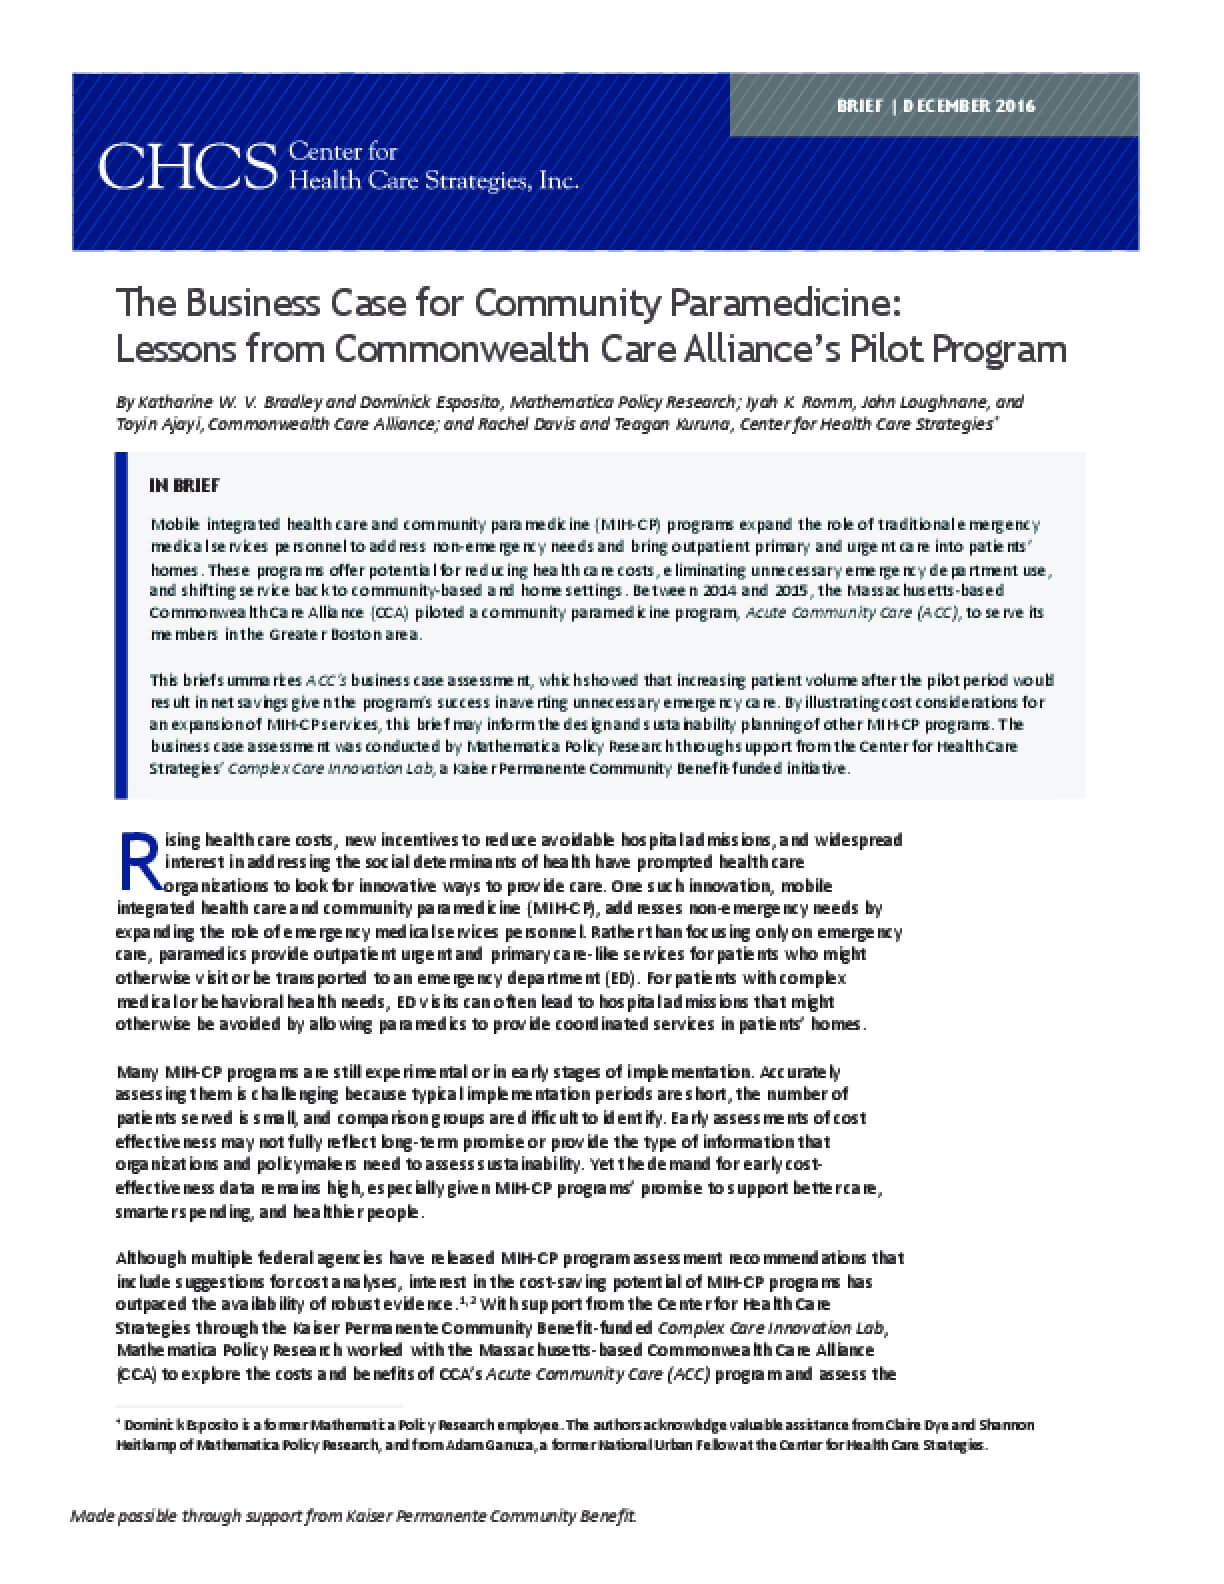 The Business Case for Community Paramedicine: Lessons from Commonwealth Care Alliance's Pilot Program